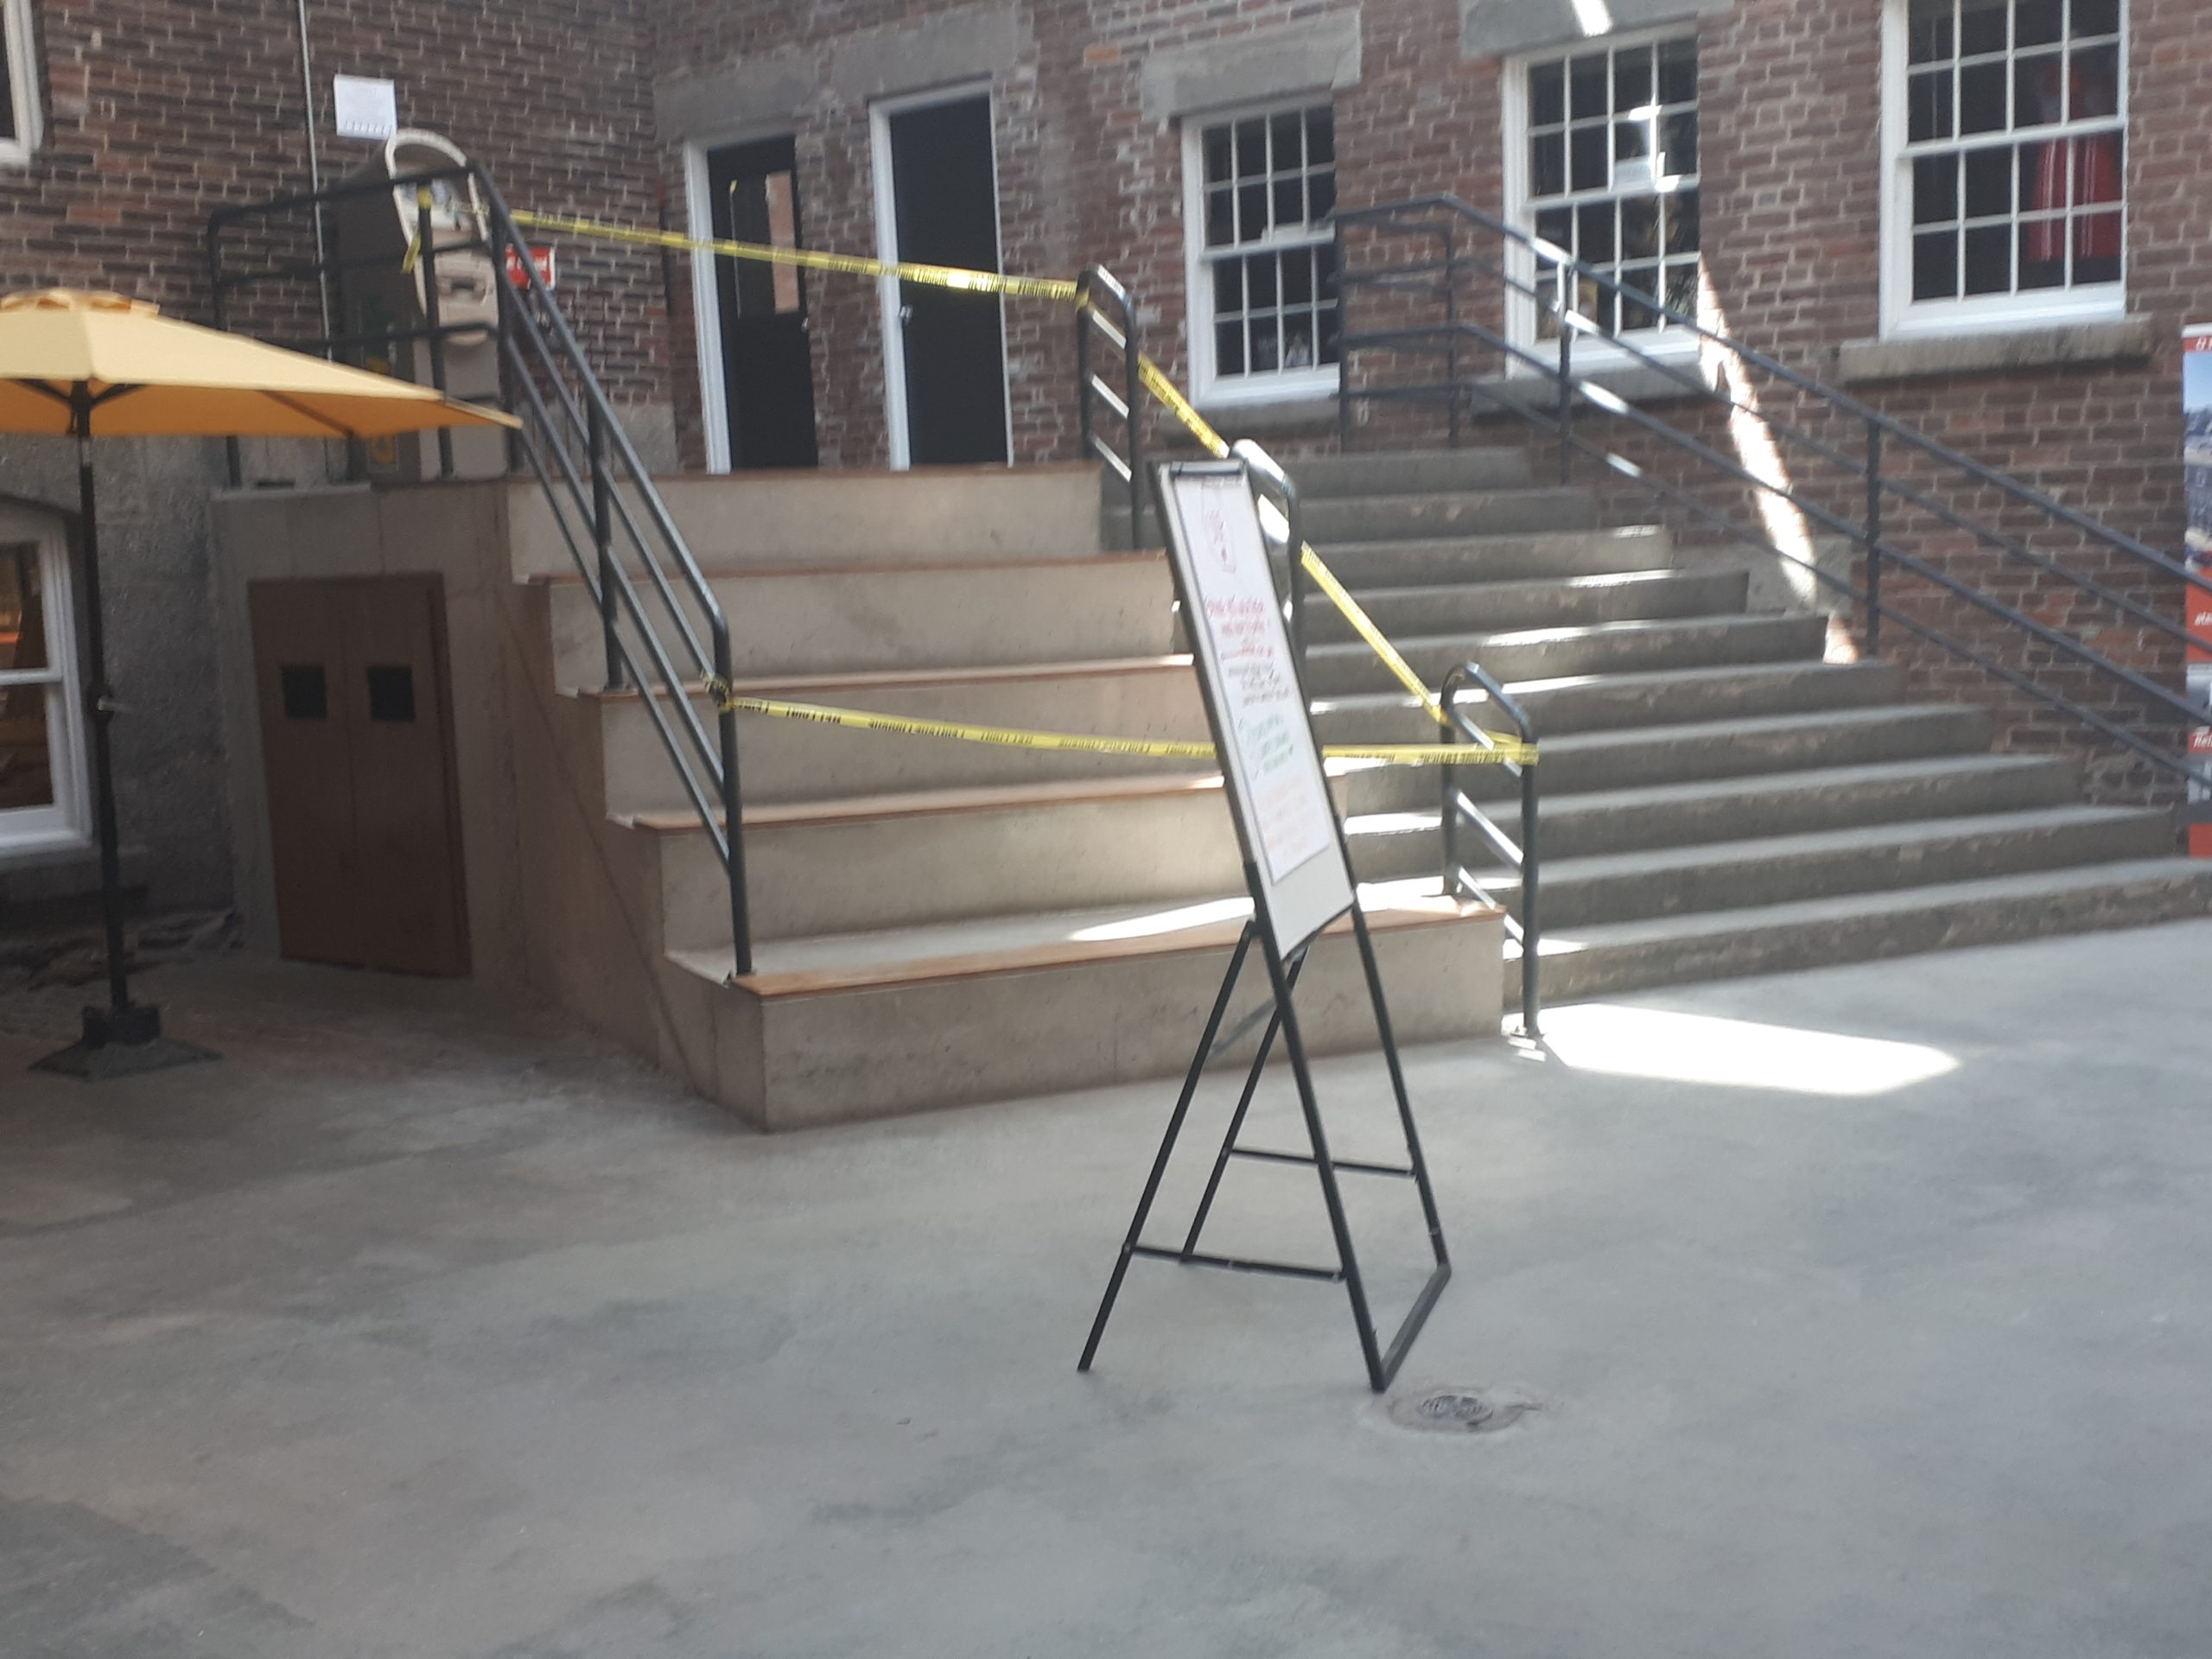 Roped-off seating area with stairs